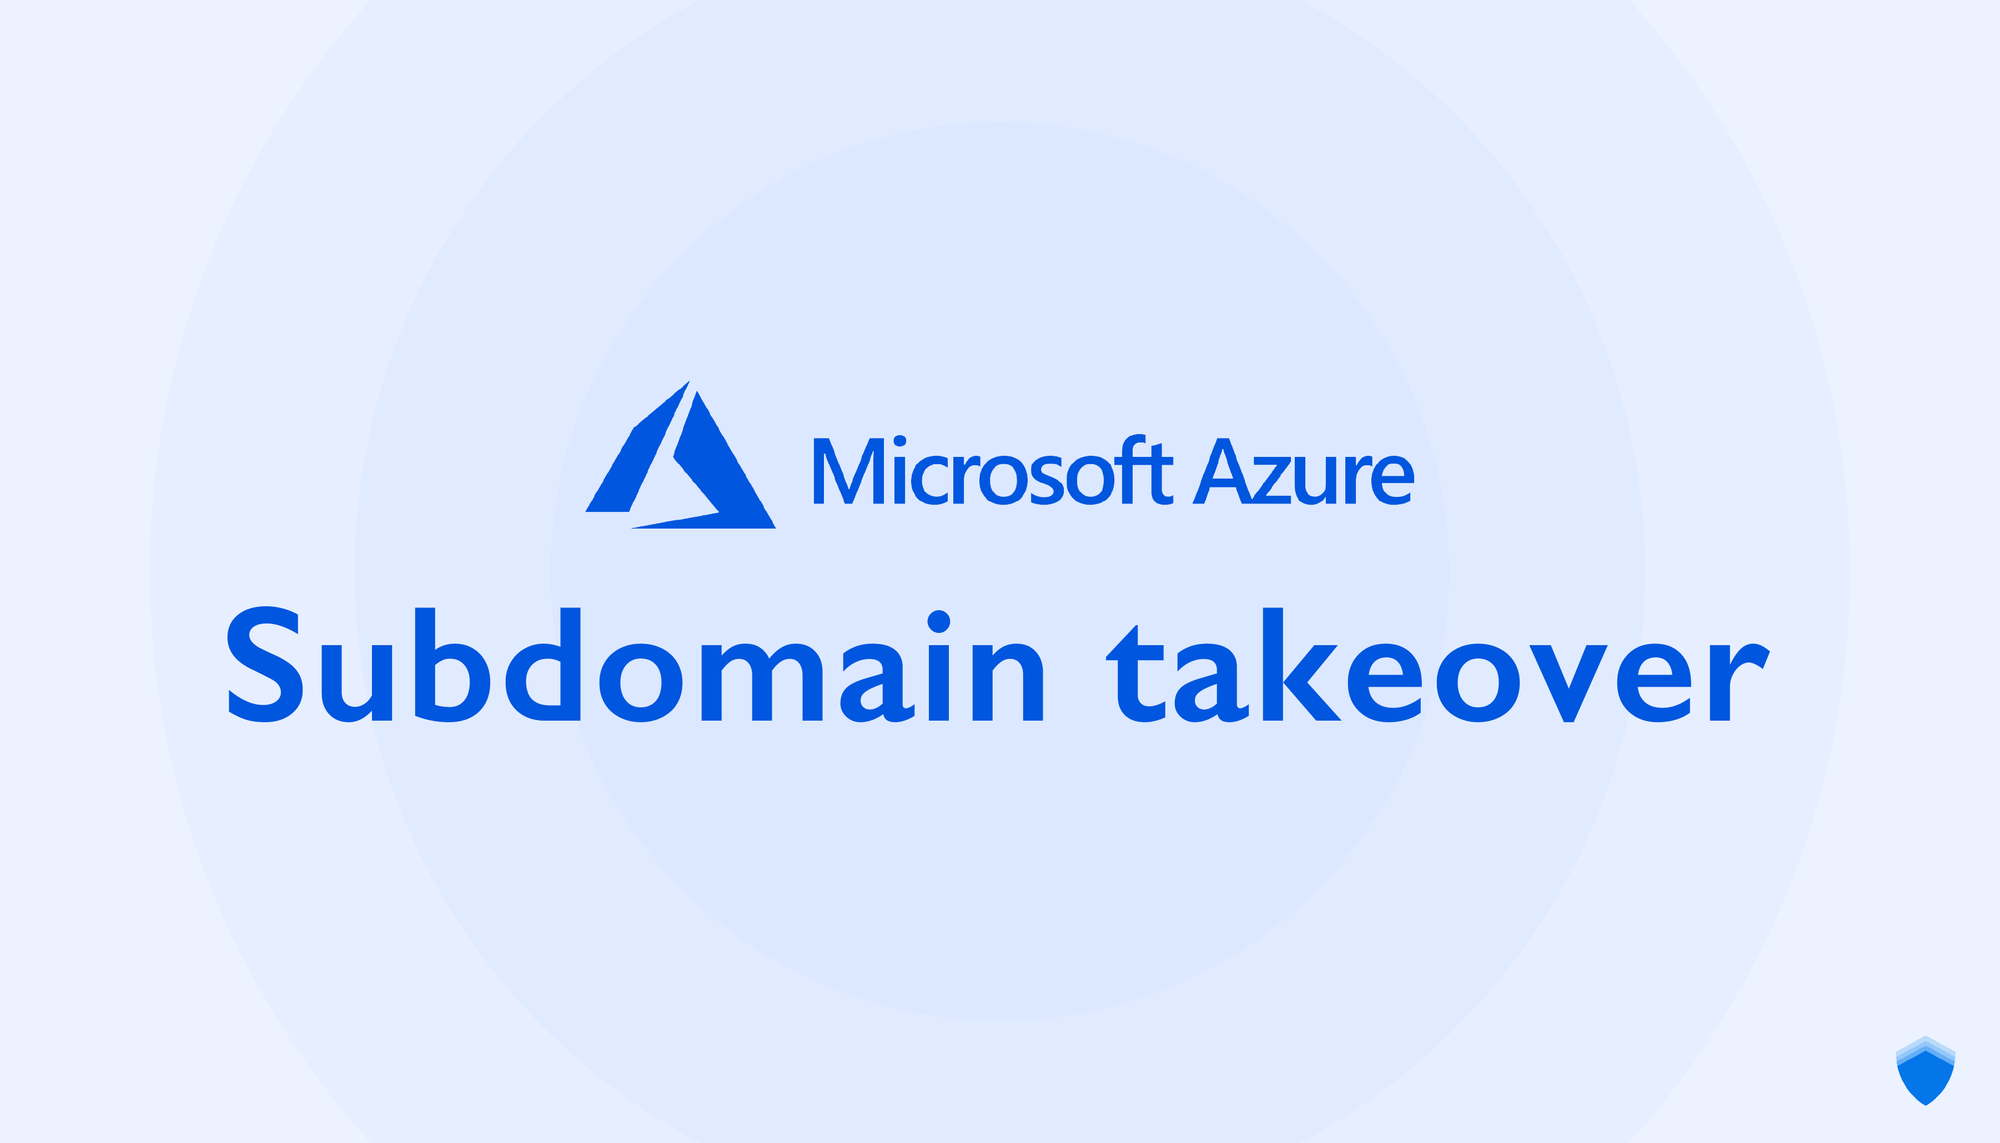 Subdomain takeover – Chapter two: Azure Services